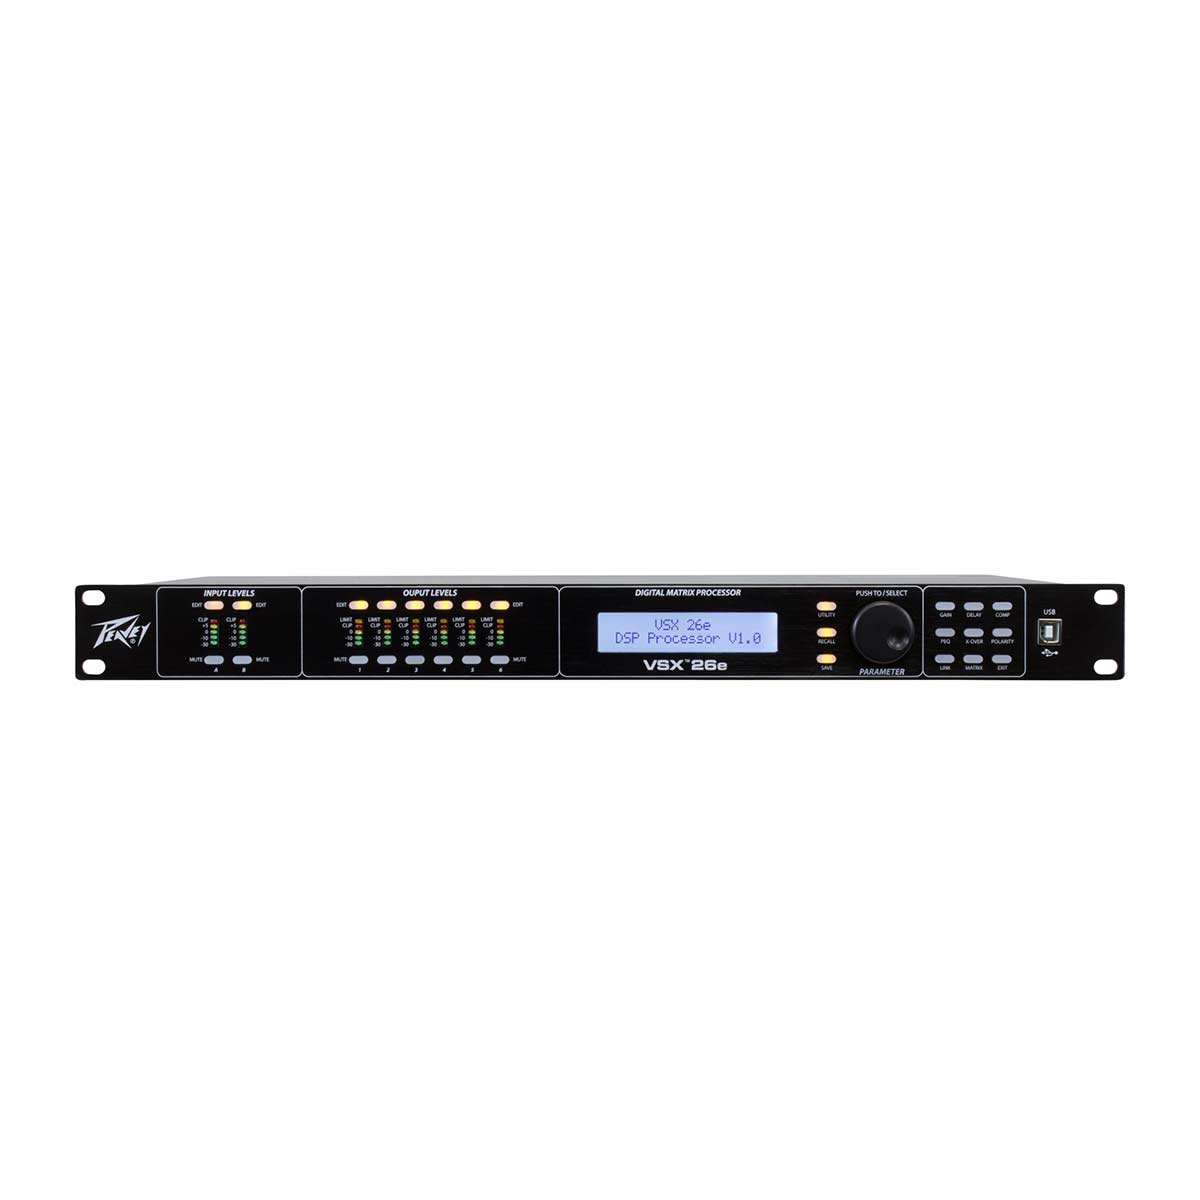 Crossover digital Peavey VSX 26e